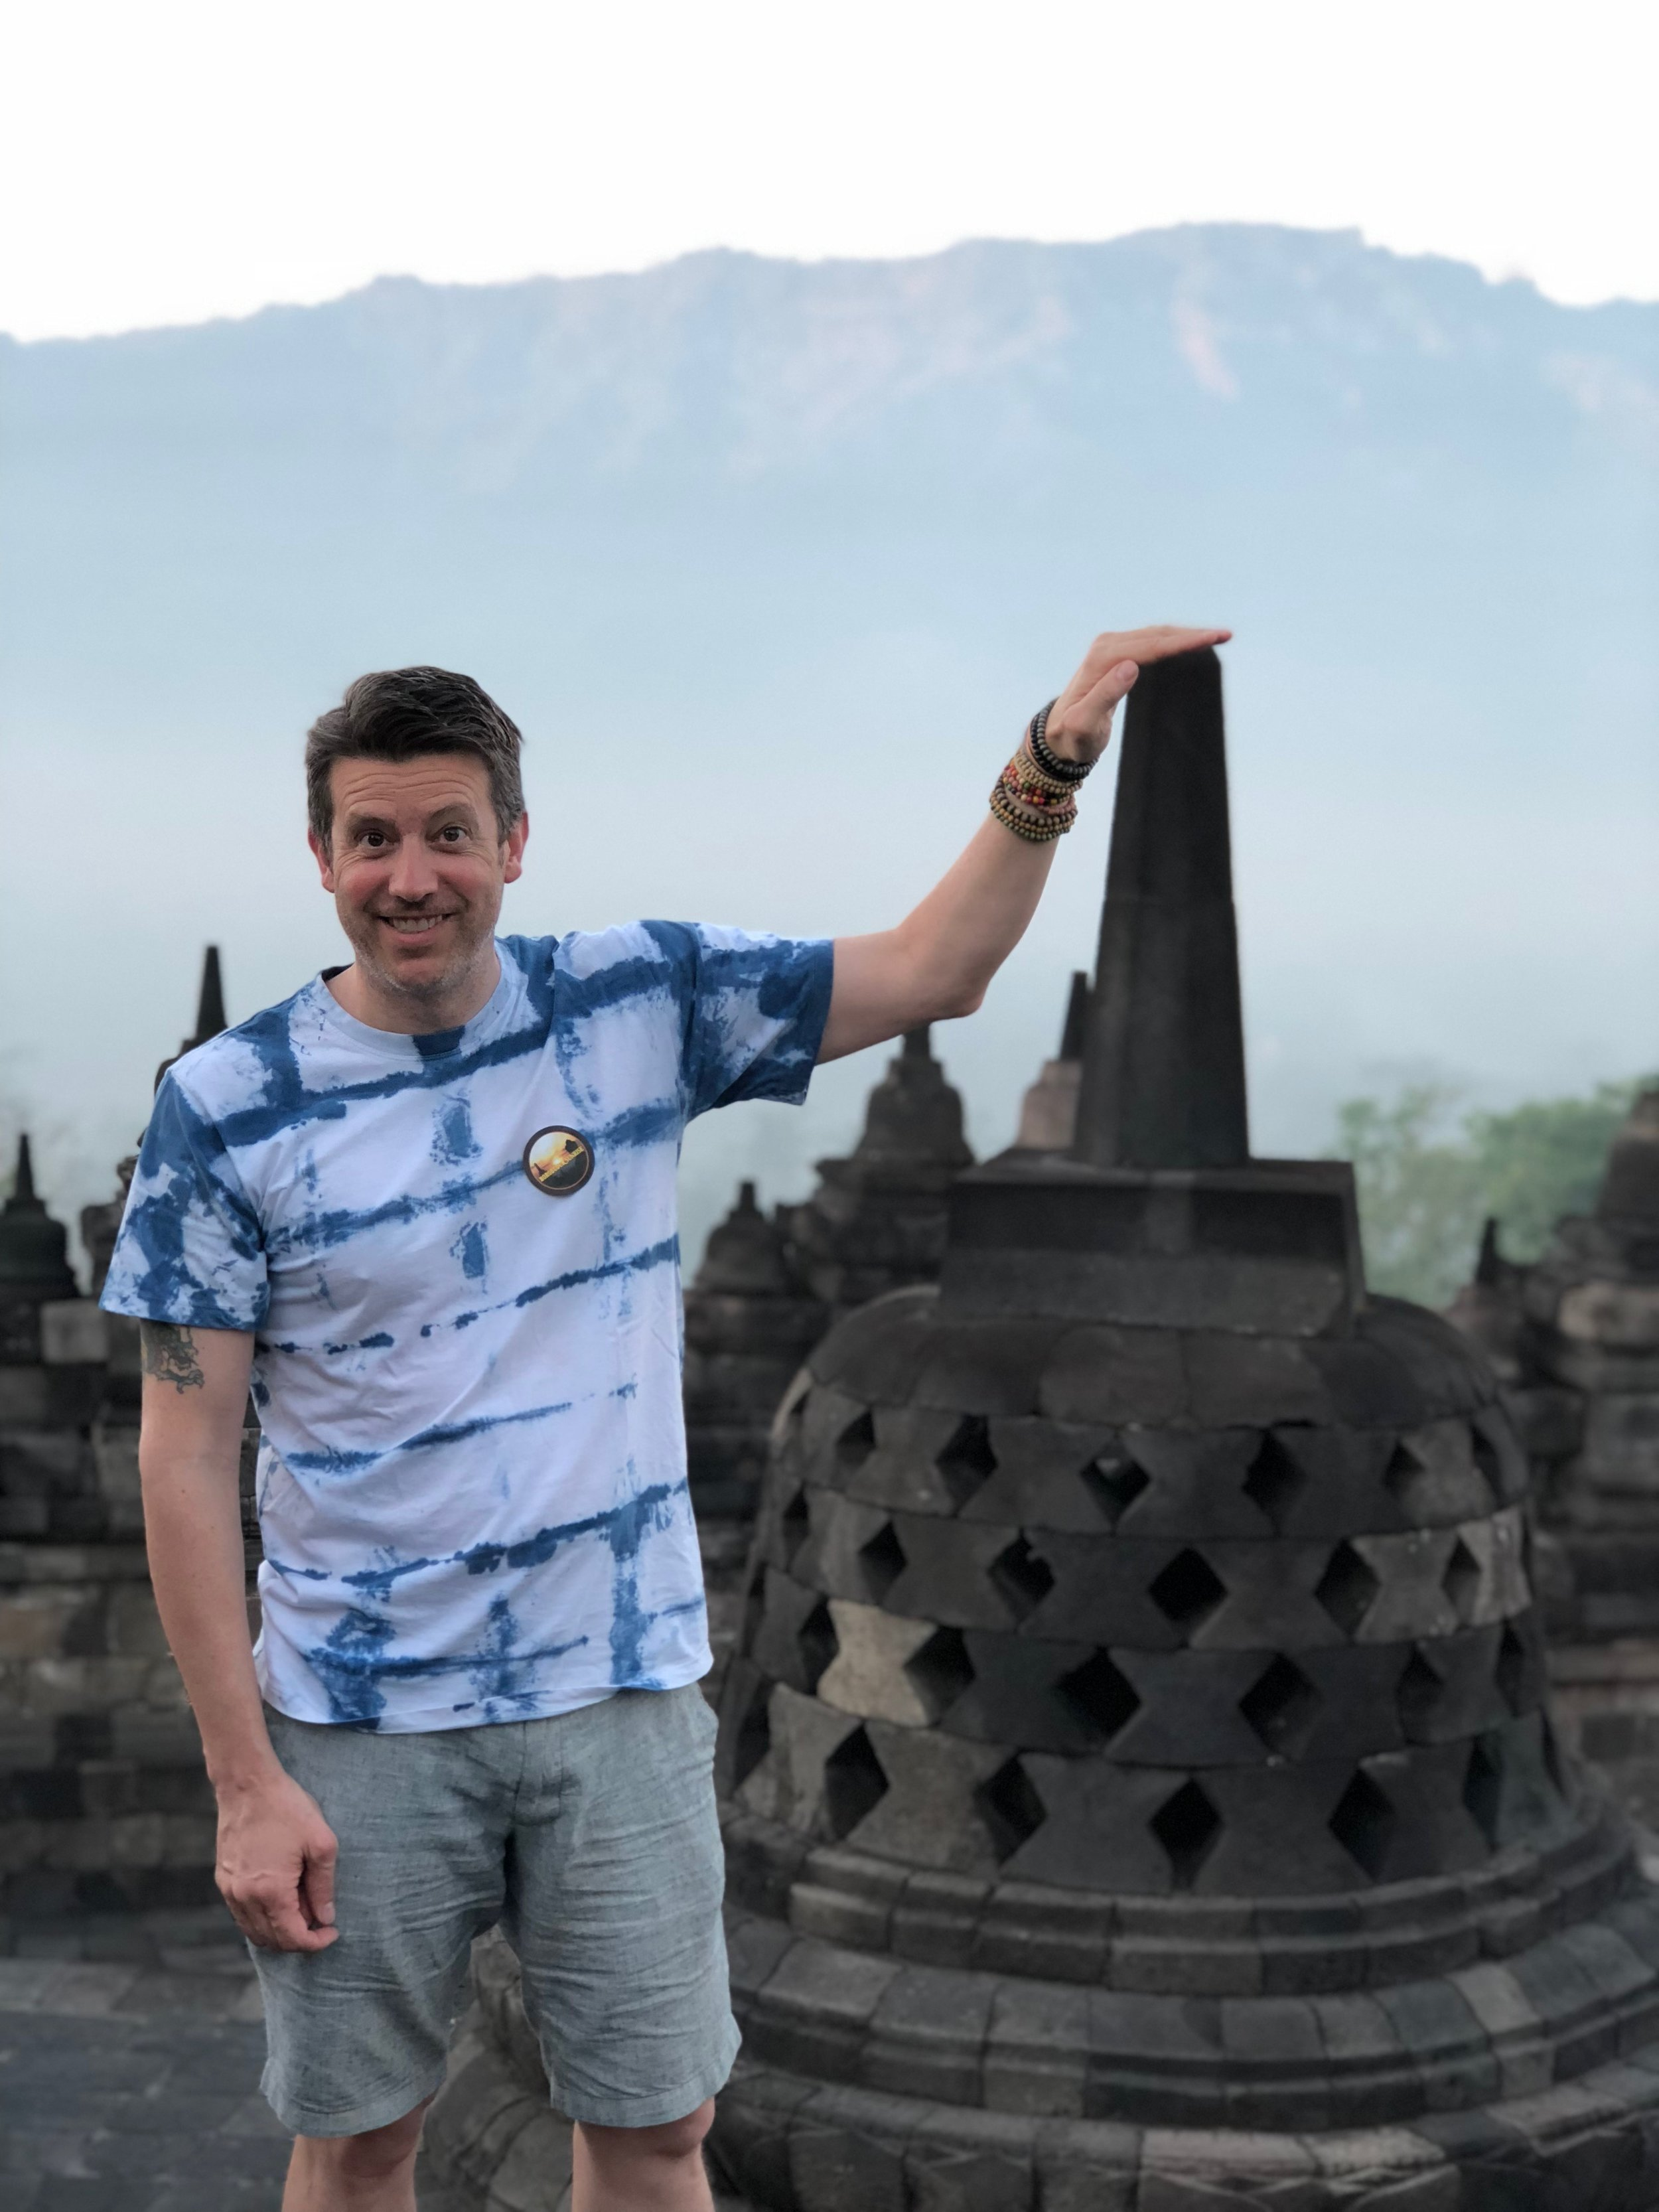 Was Wally the once-sleeping giant who created Borobudur in a single night?